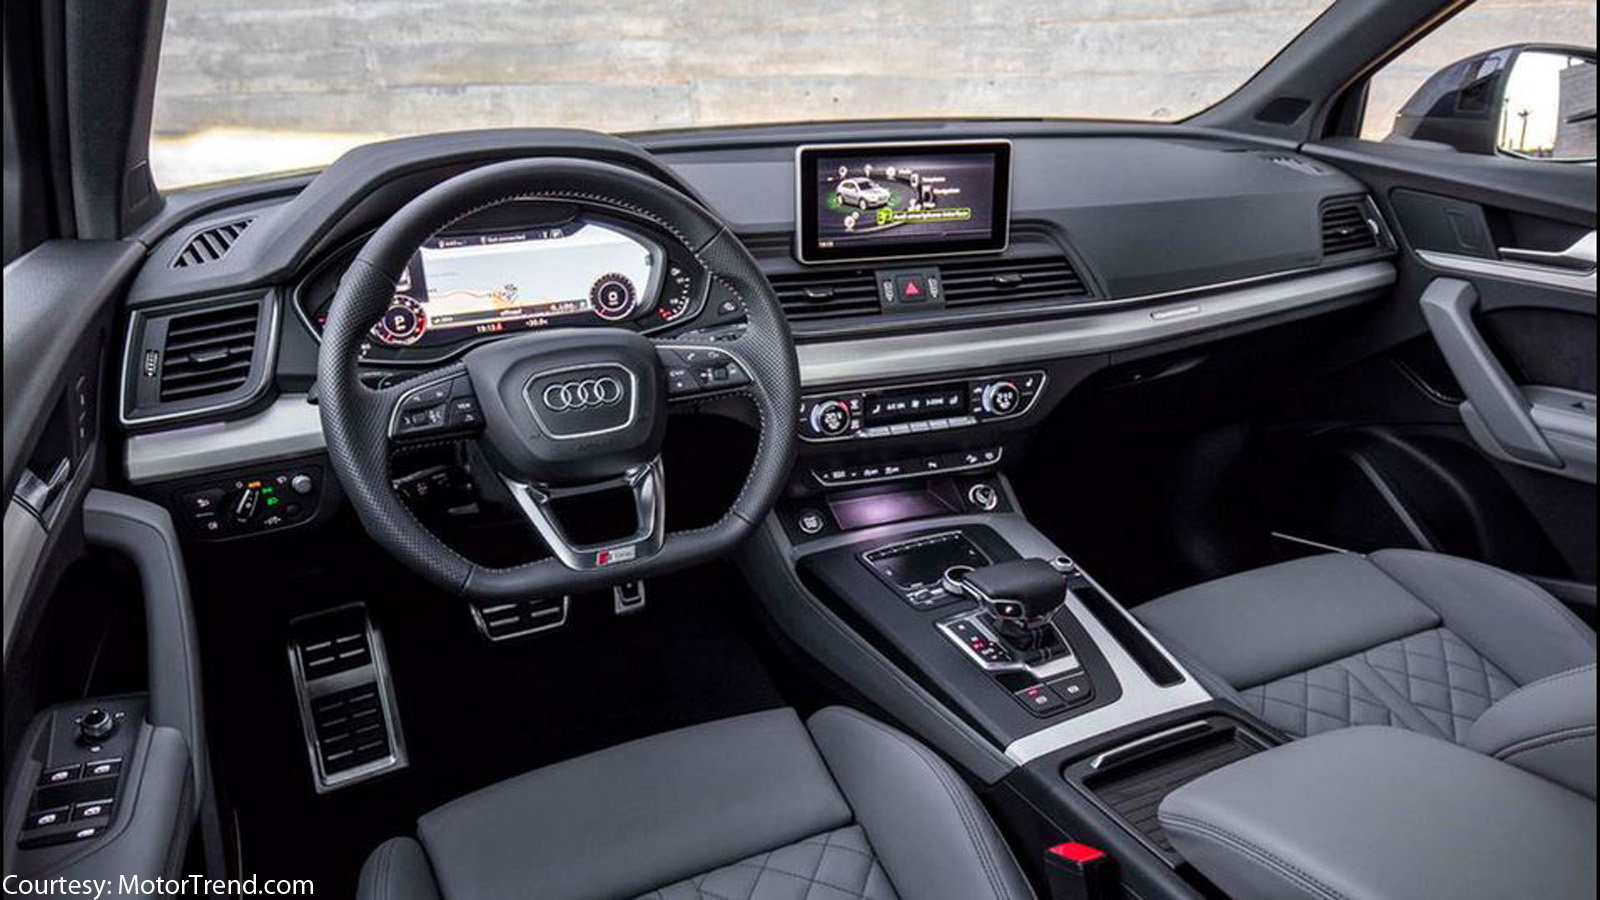 2018 audi mmi.  audi much of the q5u0027s interior will resemble q7u0027s with an upgraded mmi  interface mounted on dashboard equipped both rotary and touchpad controls throughout 2018 audi mmi r